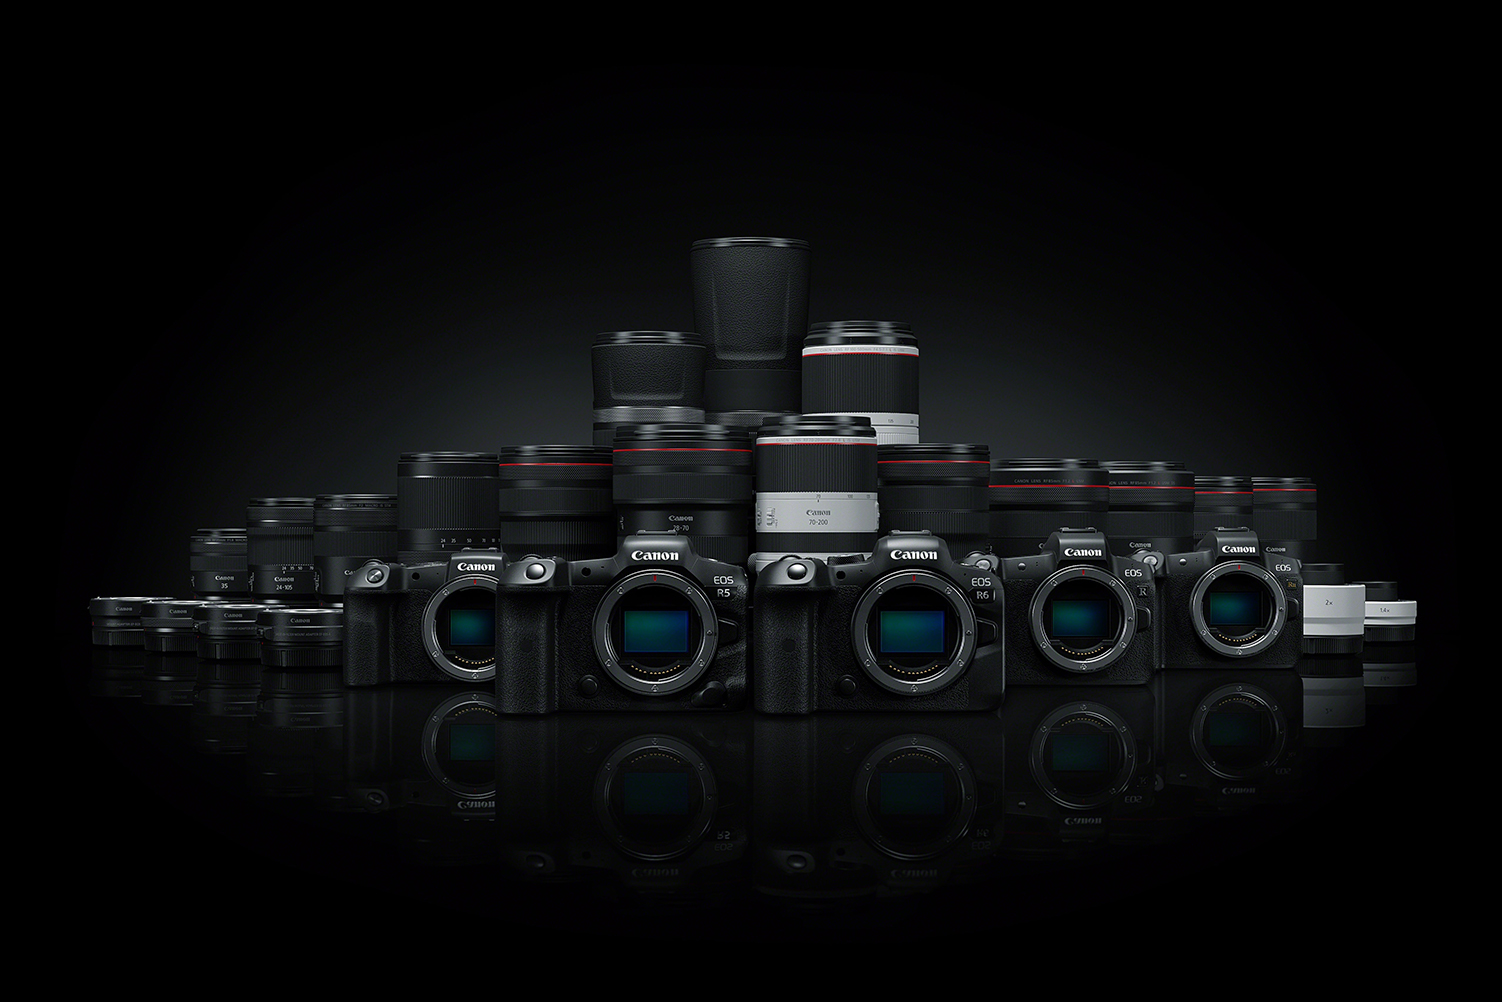 Canon EOSR range from the Canon launch in July